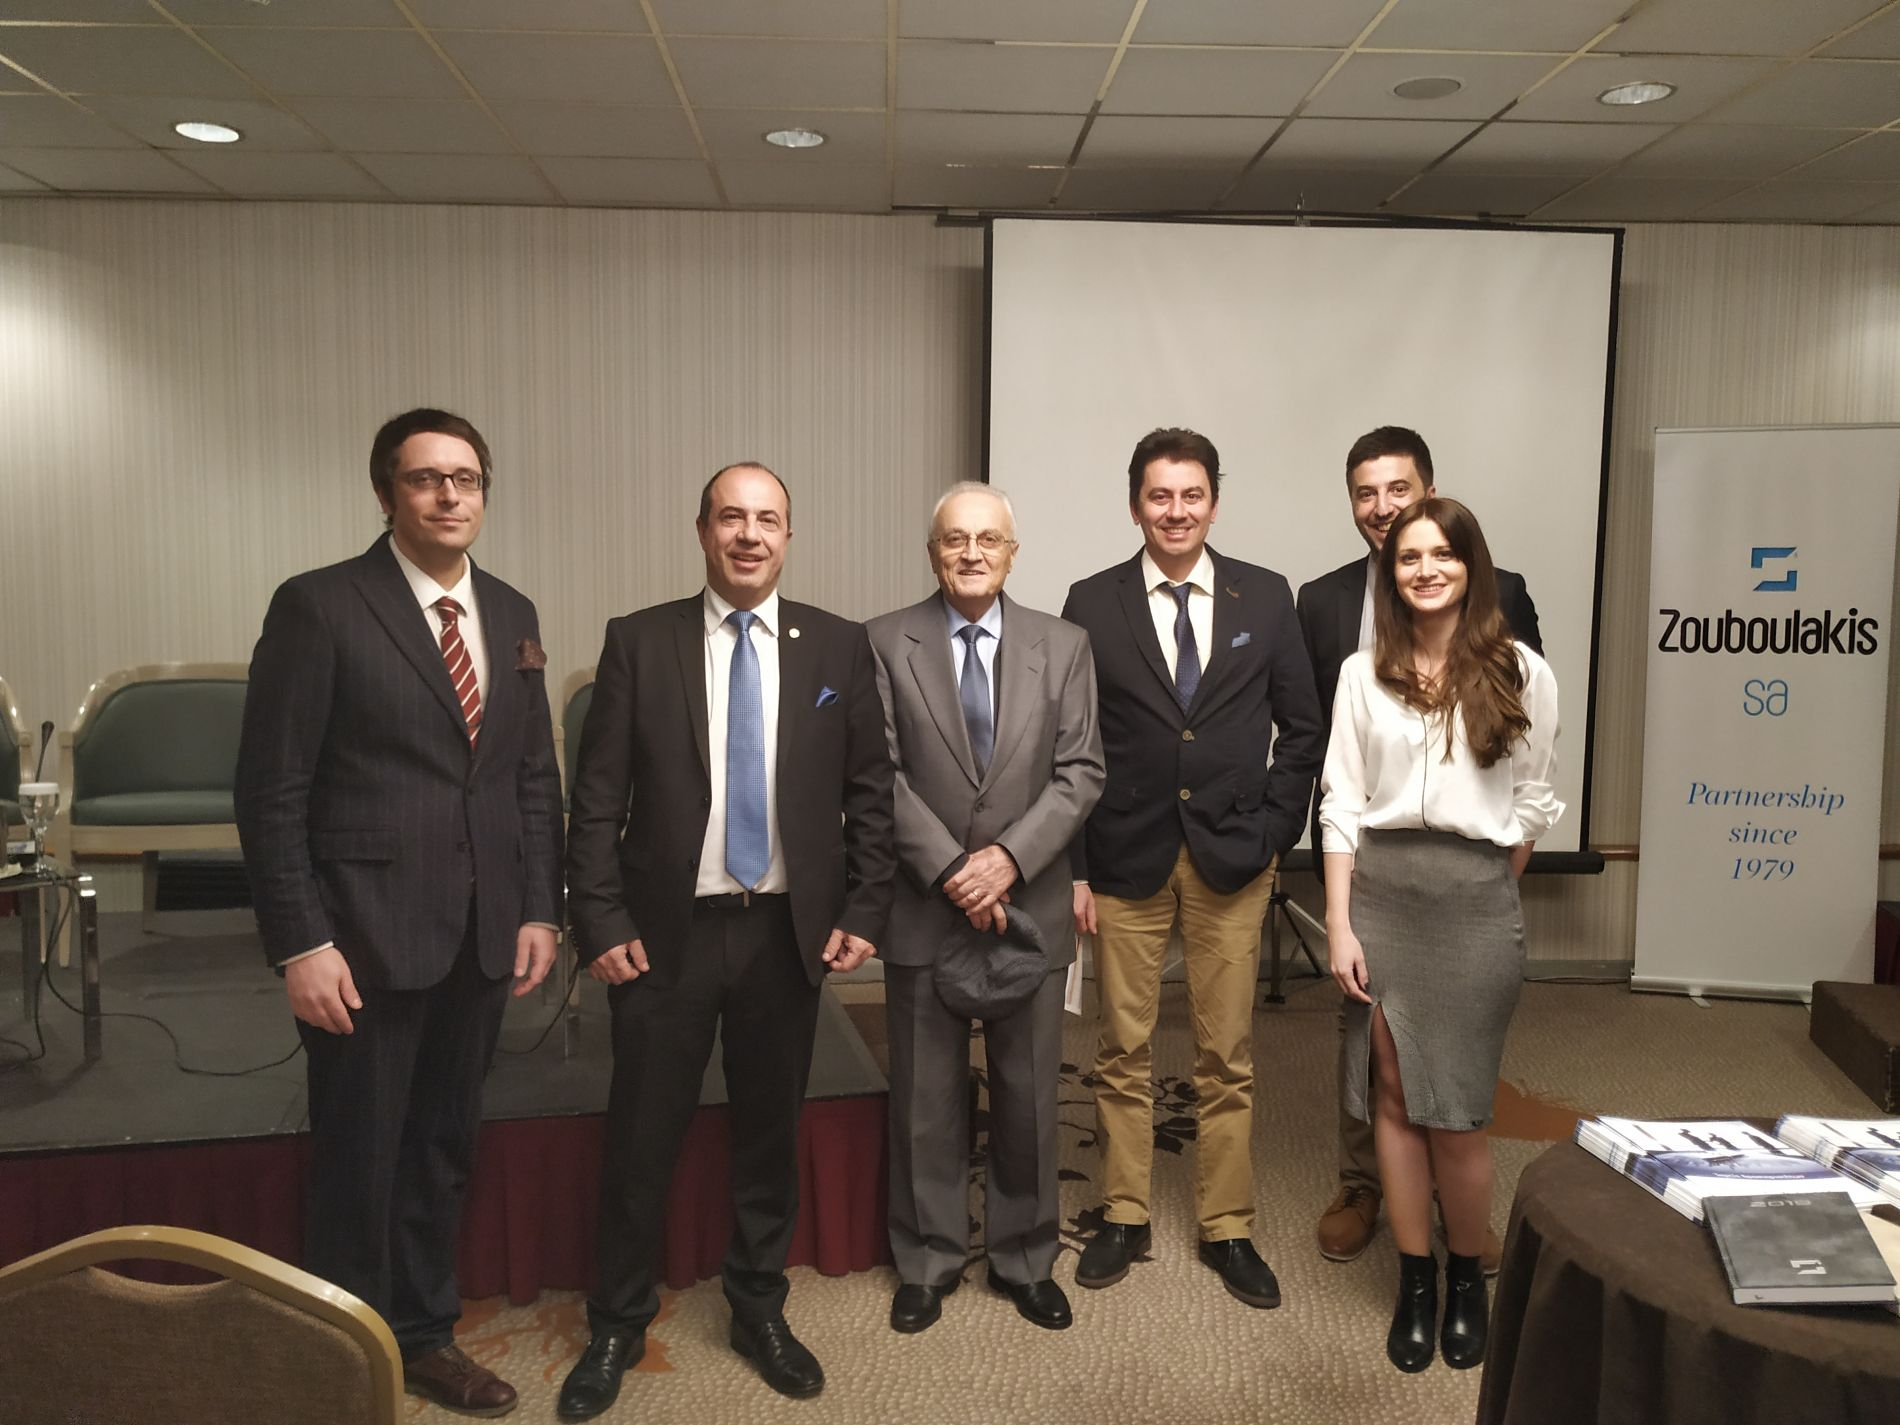 The declaimers together with the mentor and founder of the company Mr Ioannis Zouboulakis